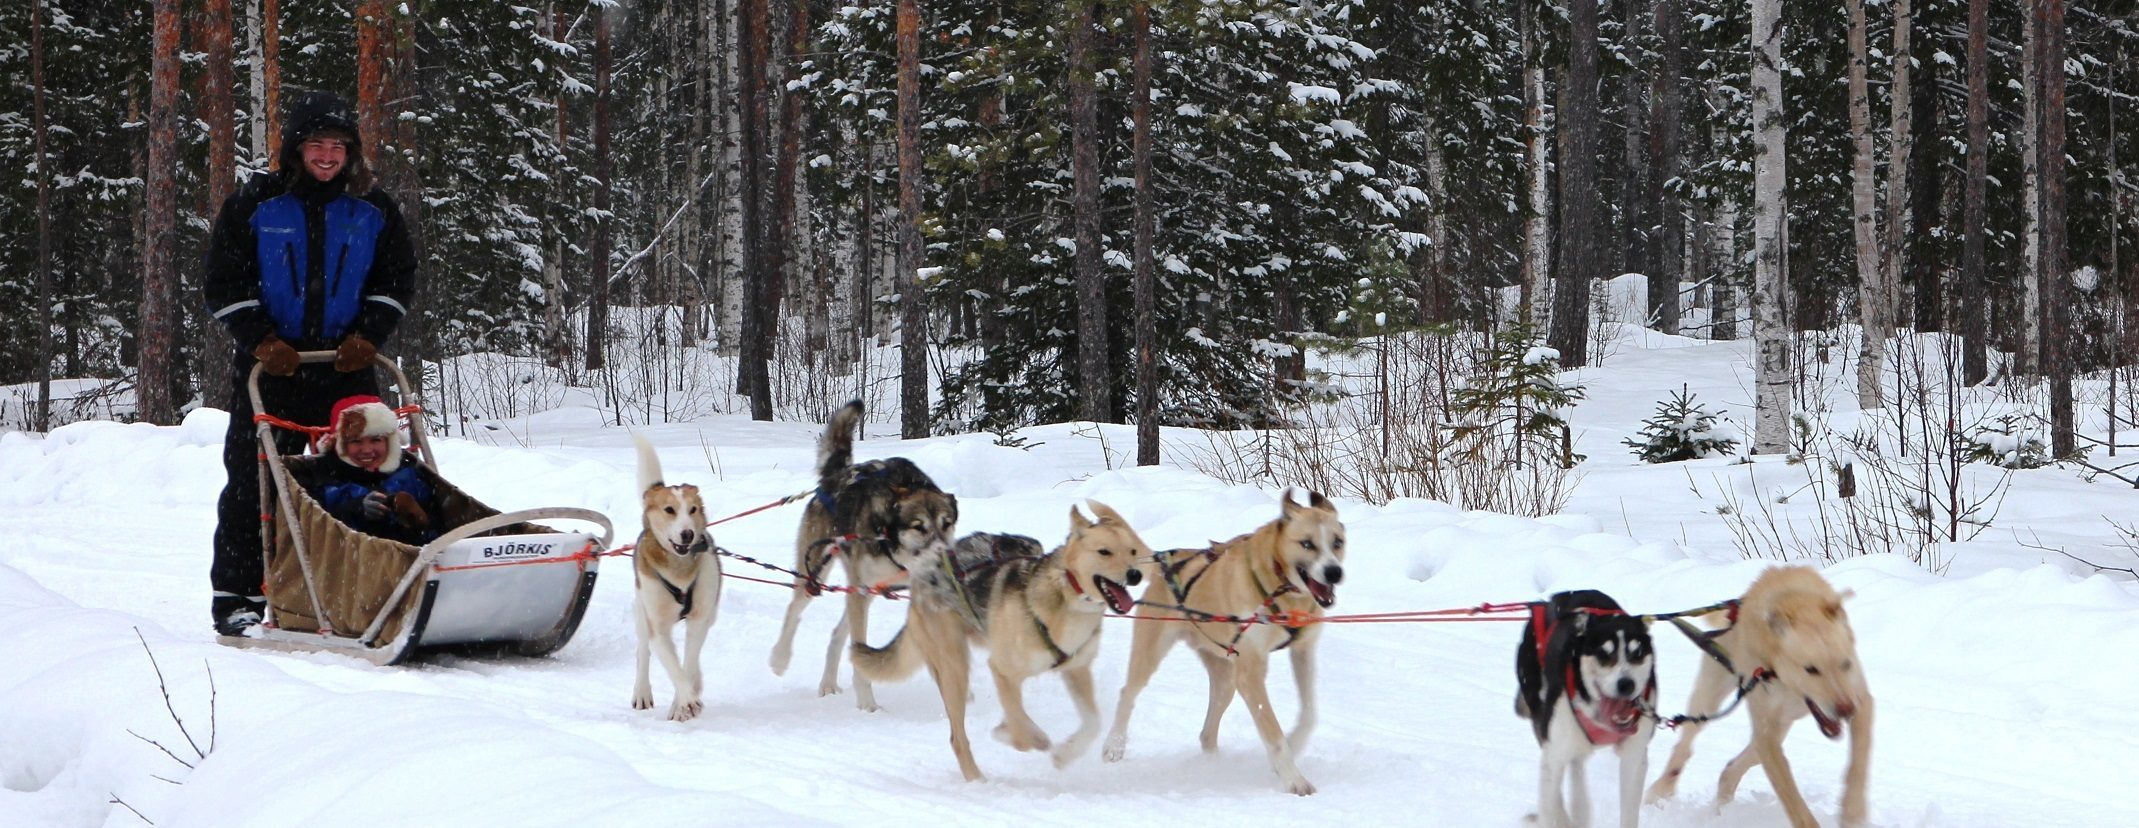 f5b9dcc512 Visit a Husky Farm and All Day Safari - Lapland Welcome in Finland